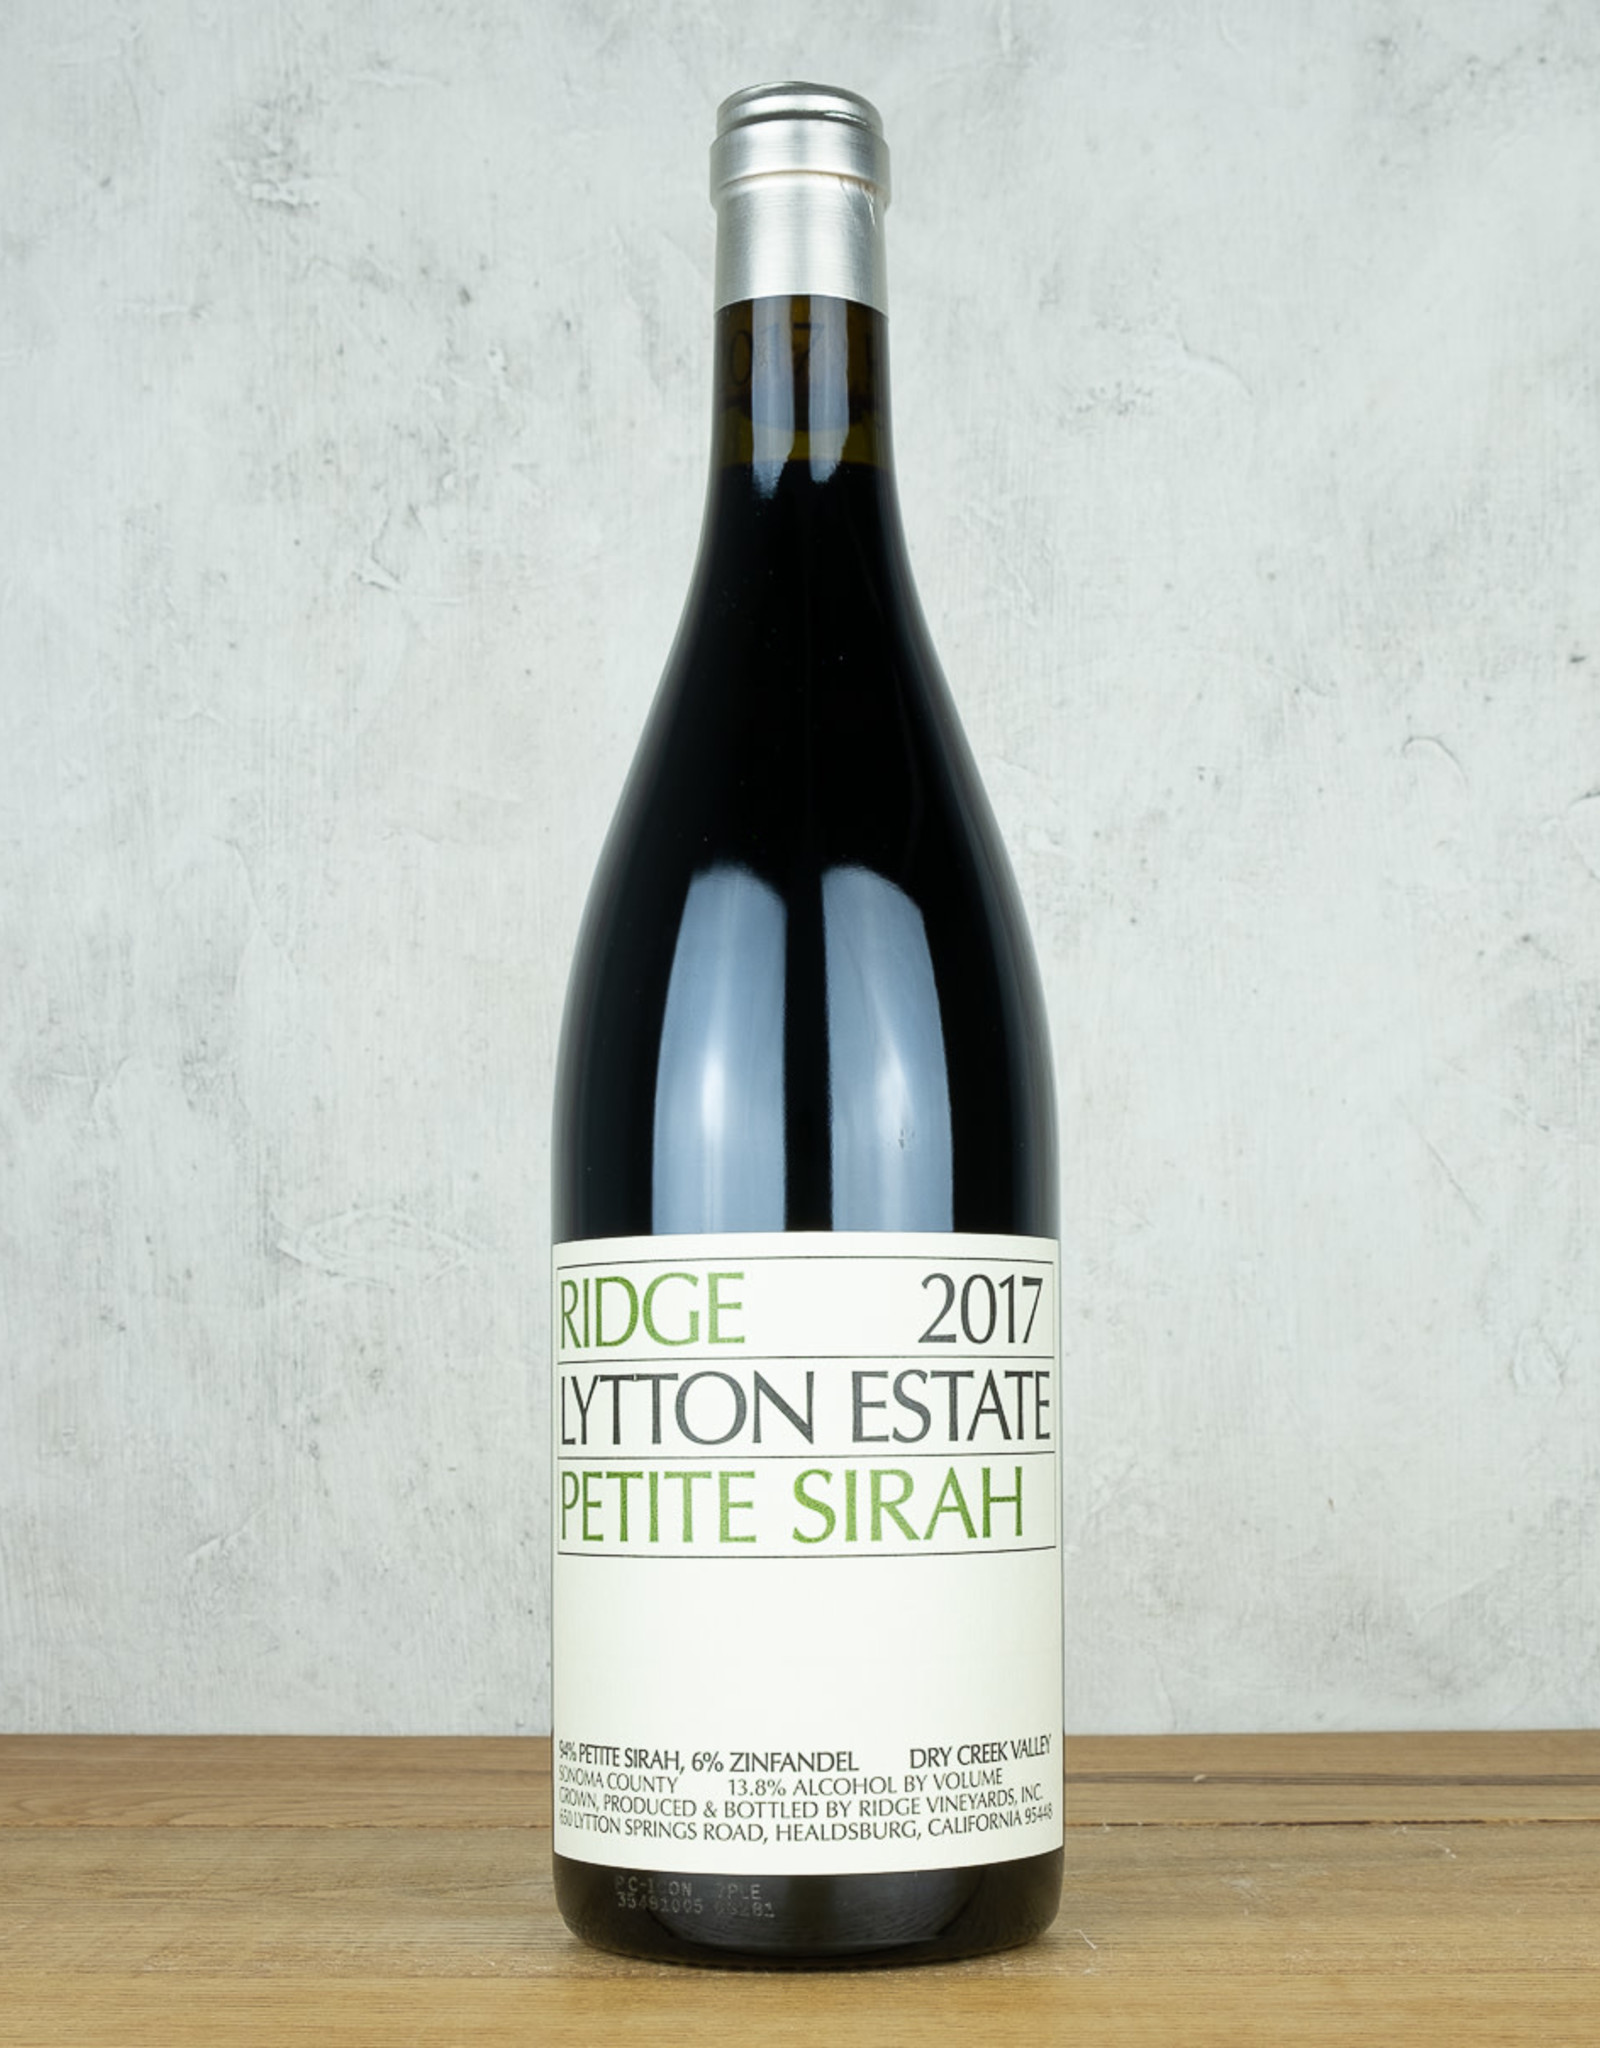 Ridge Lytton Estate Petite Sirah